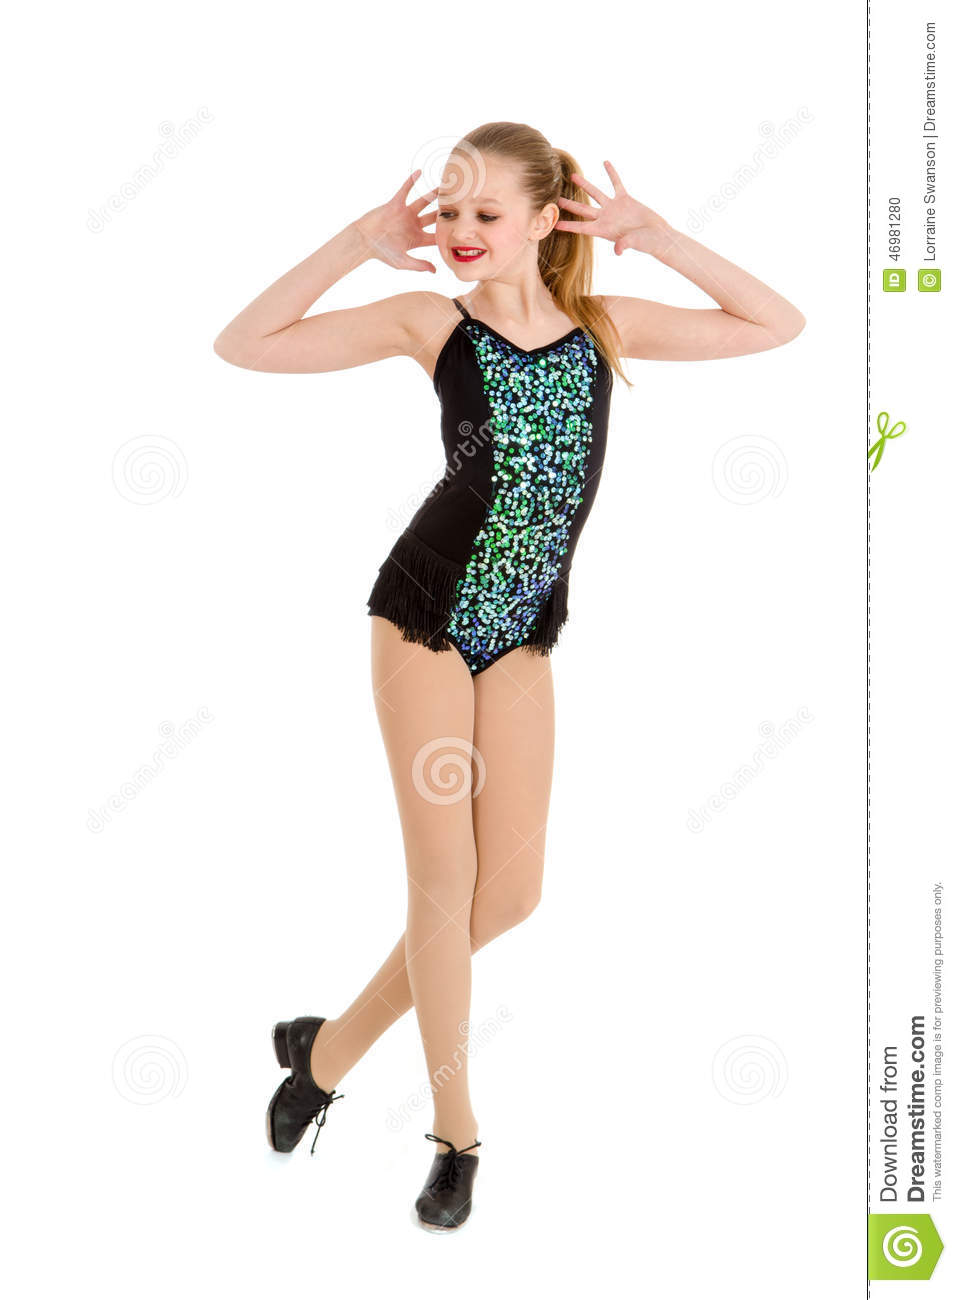 Preteen Tap Dancer in Competition Costume  sc 1 st  Dreamstime.com & Preteen Tap Dancer In Competition Costume Stock Photo - Image of ...